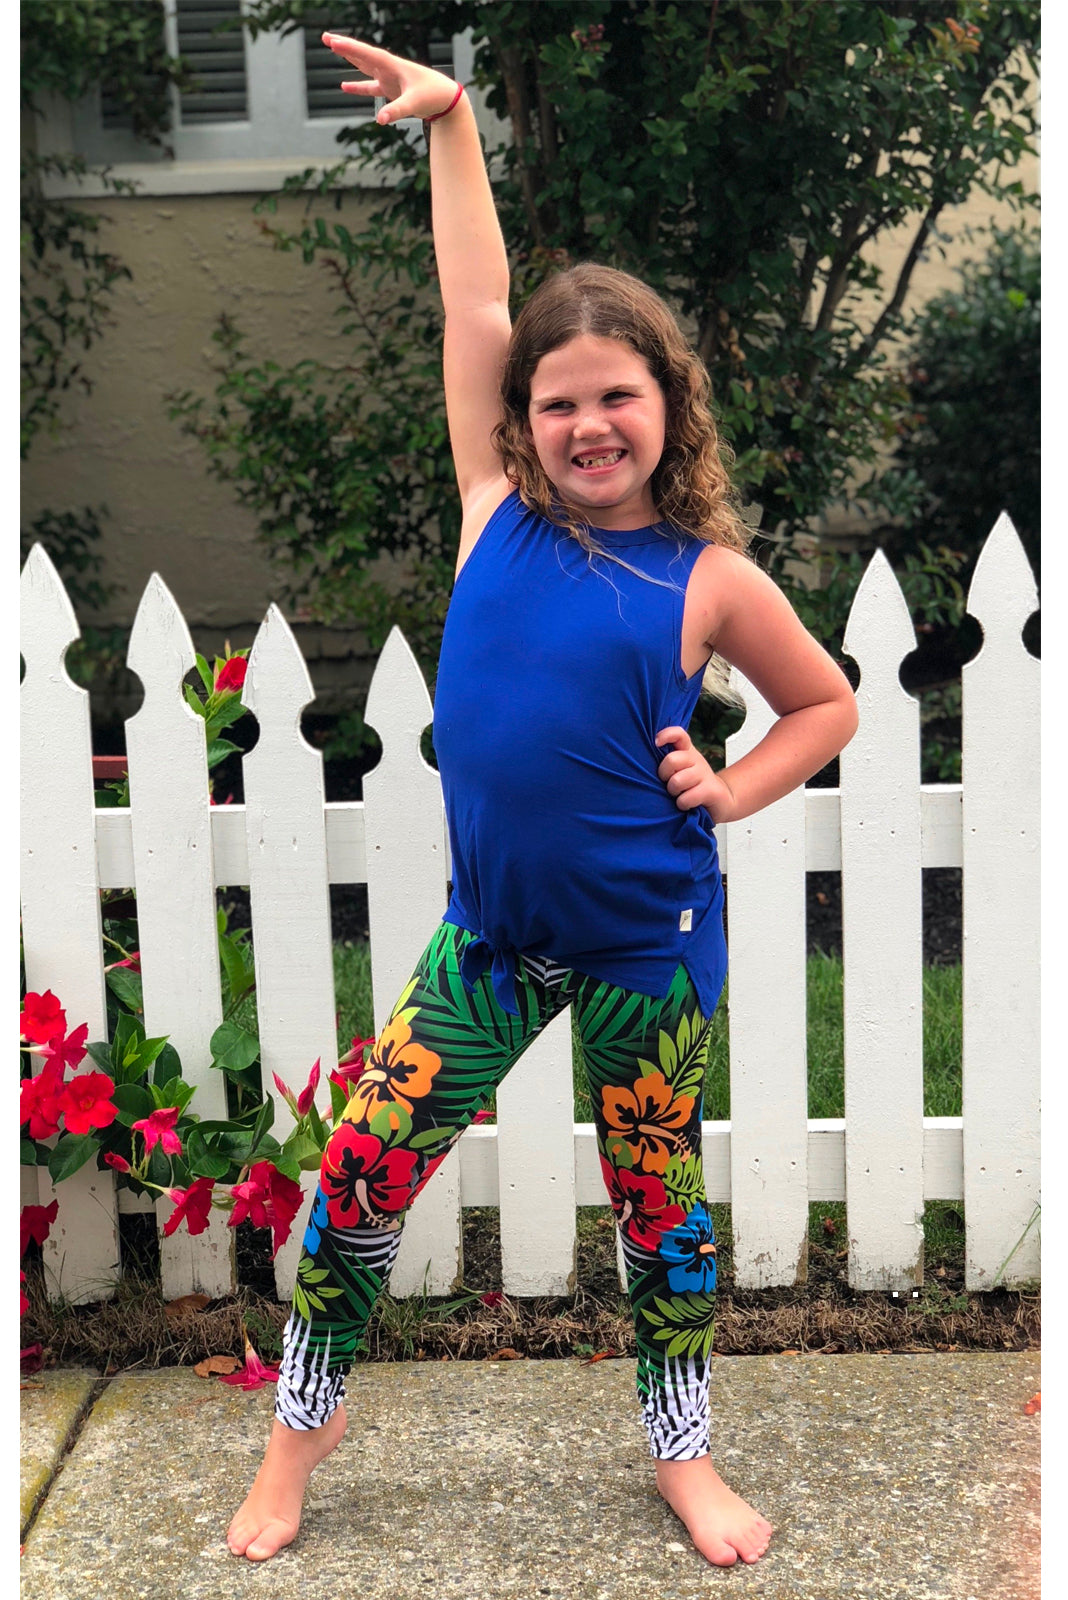 Island Girl Legging for Kids